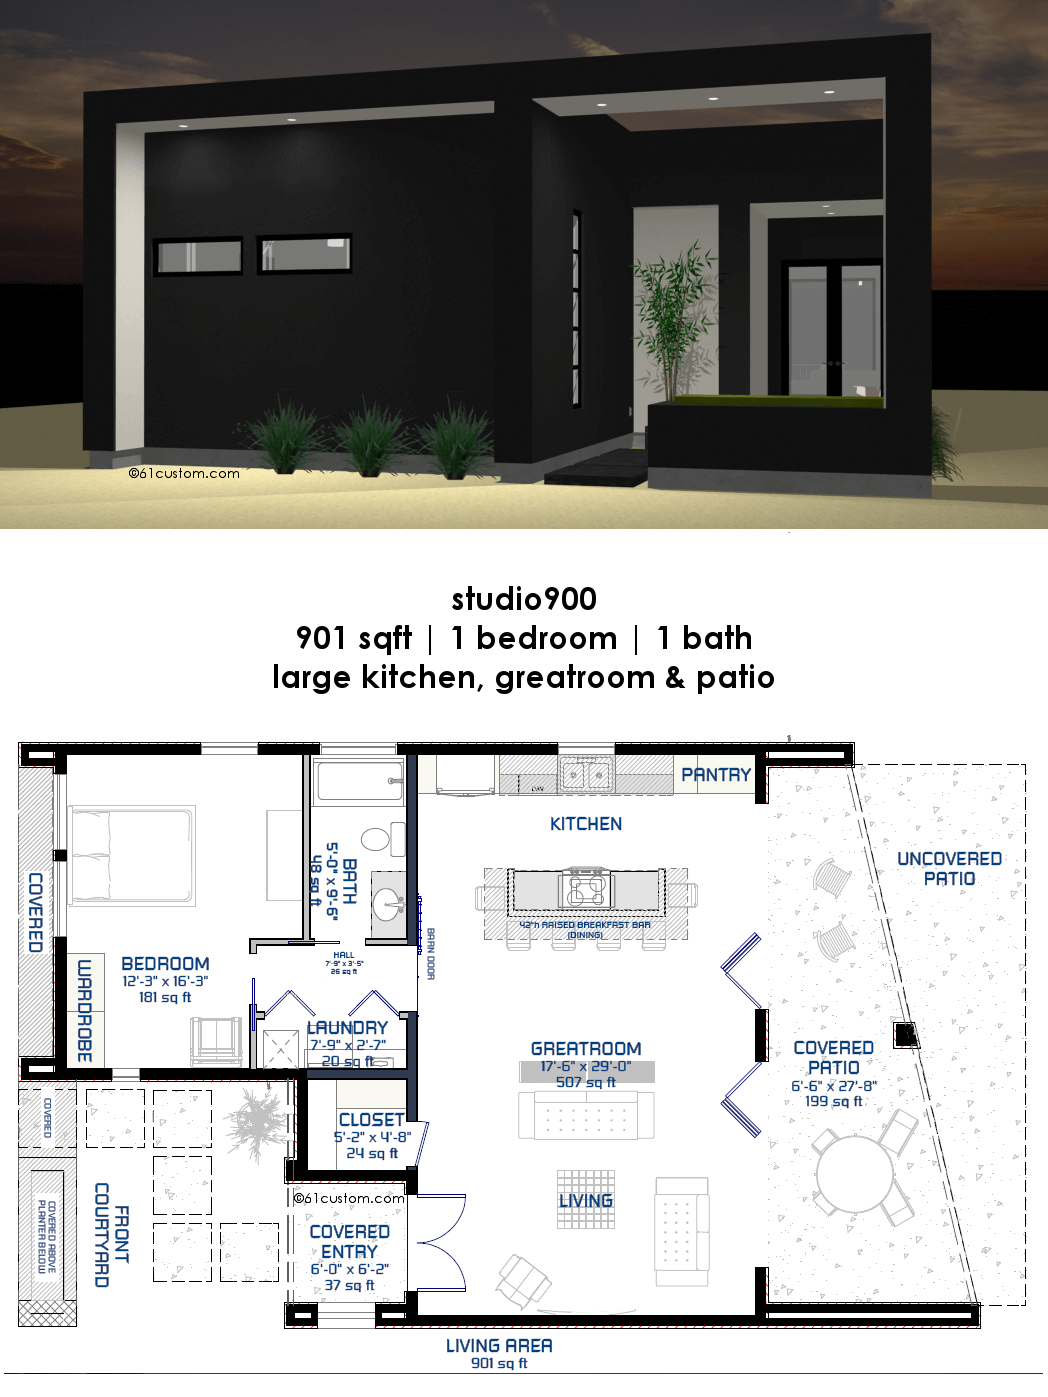 Studio900 small modern house plan with courtyard 61custom for Small modern home plans